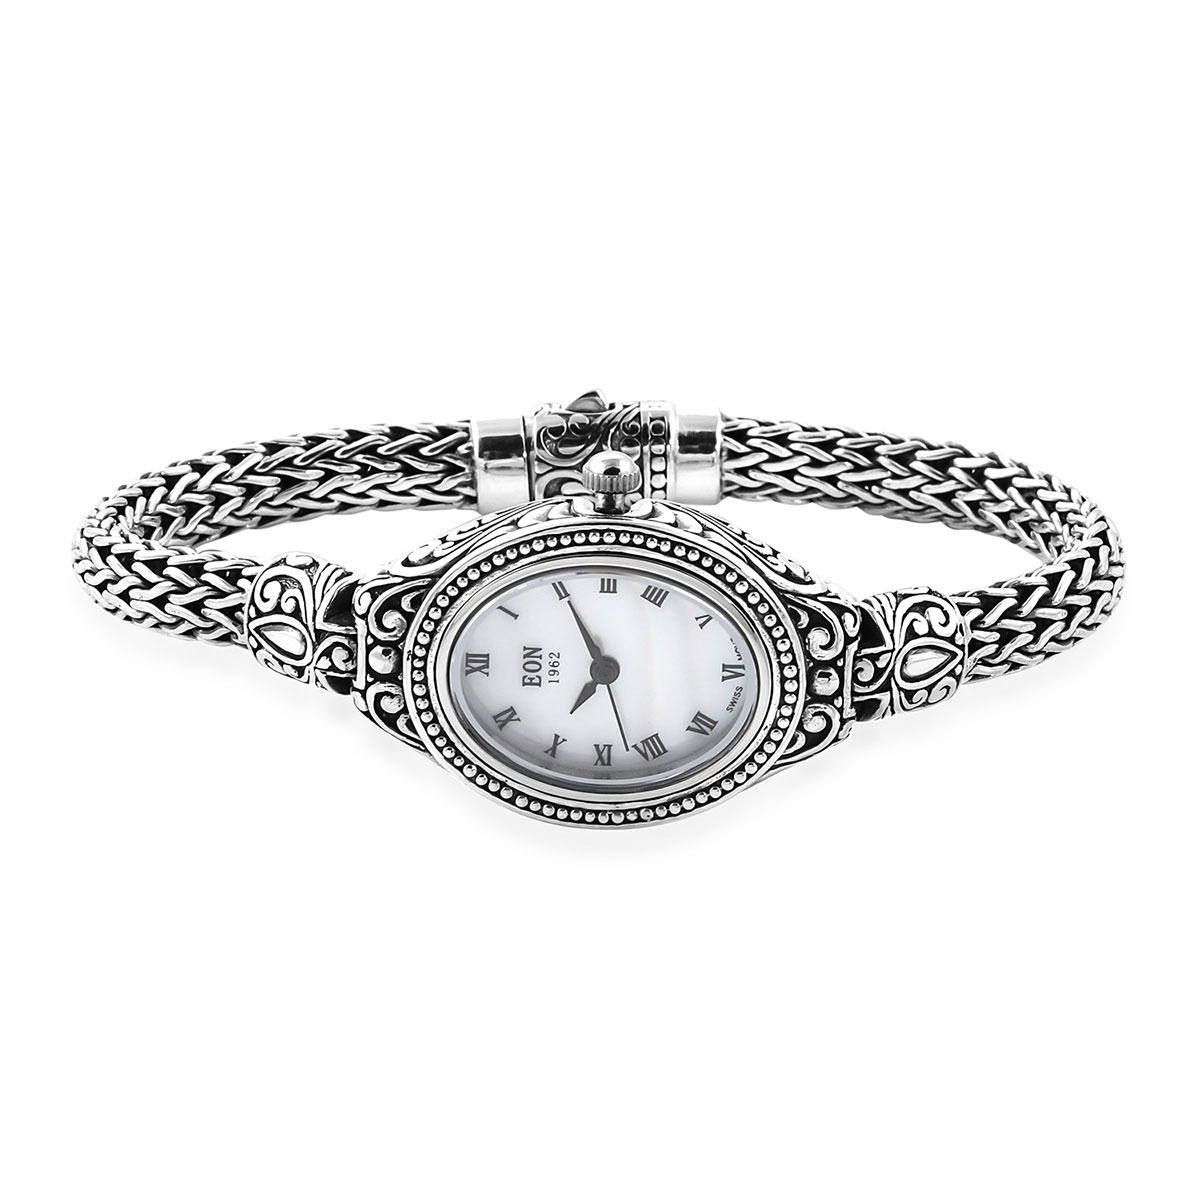 Vintage Mom TOP Quality FREE SHIPPING. Sister Wife 925 Sterling Silver Bracelet HandMade Silver Gift for Her